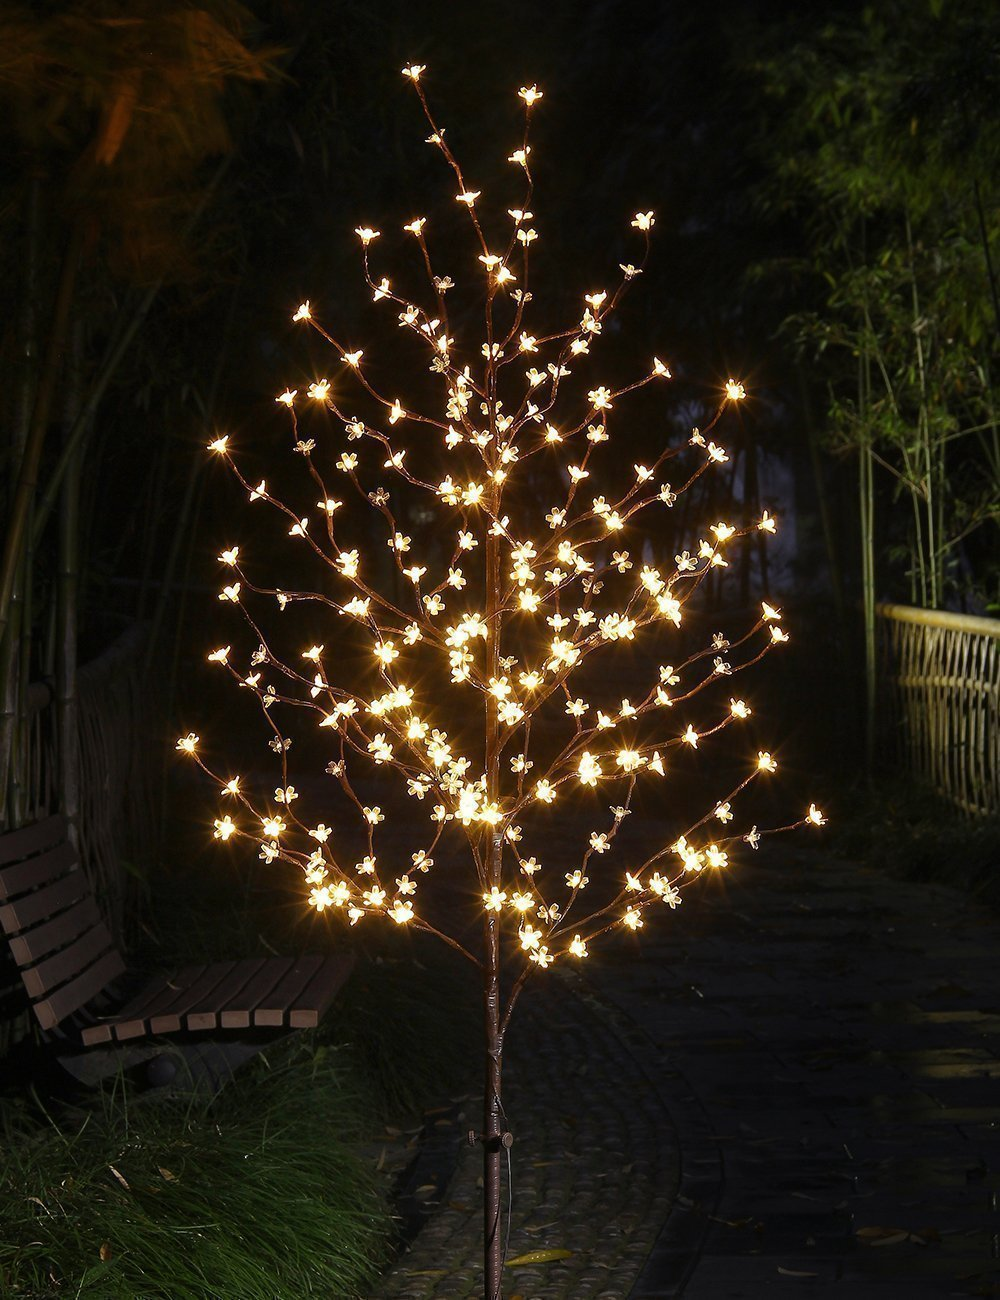 Lightshare 6 Feet Cherry Blossom Lighted Tree, 208 LED lights, Warm White, For Christmas Tree, Party, Wedding, and More Festival Deoration E Home International Inc. LTS-XTHS208B6FT-WW